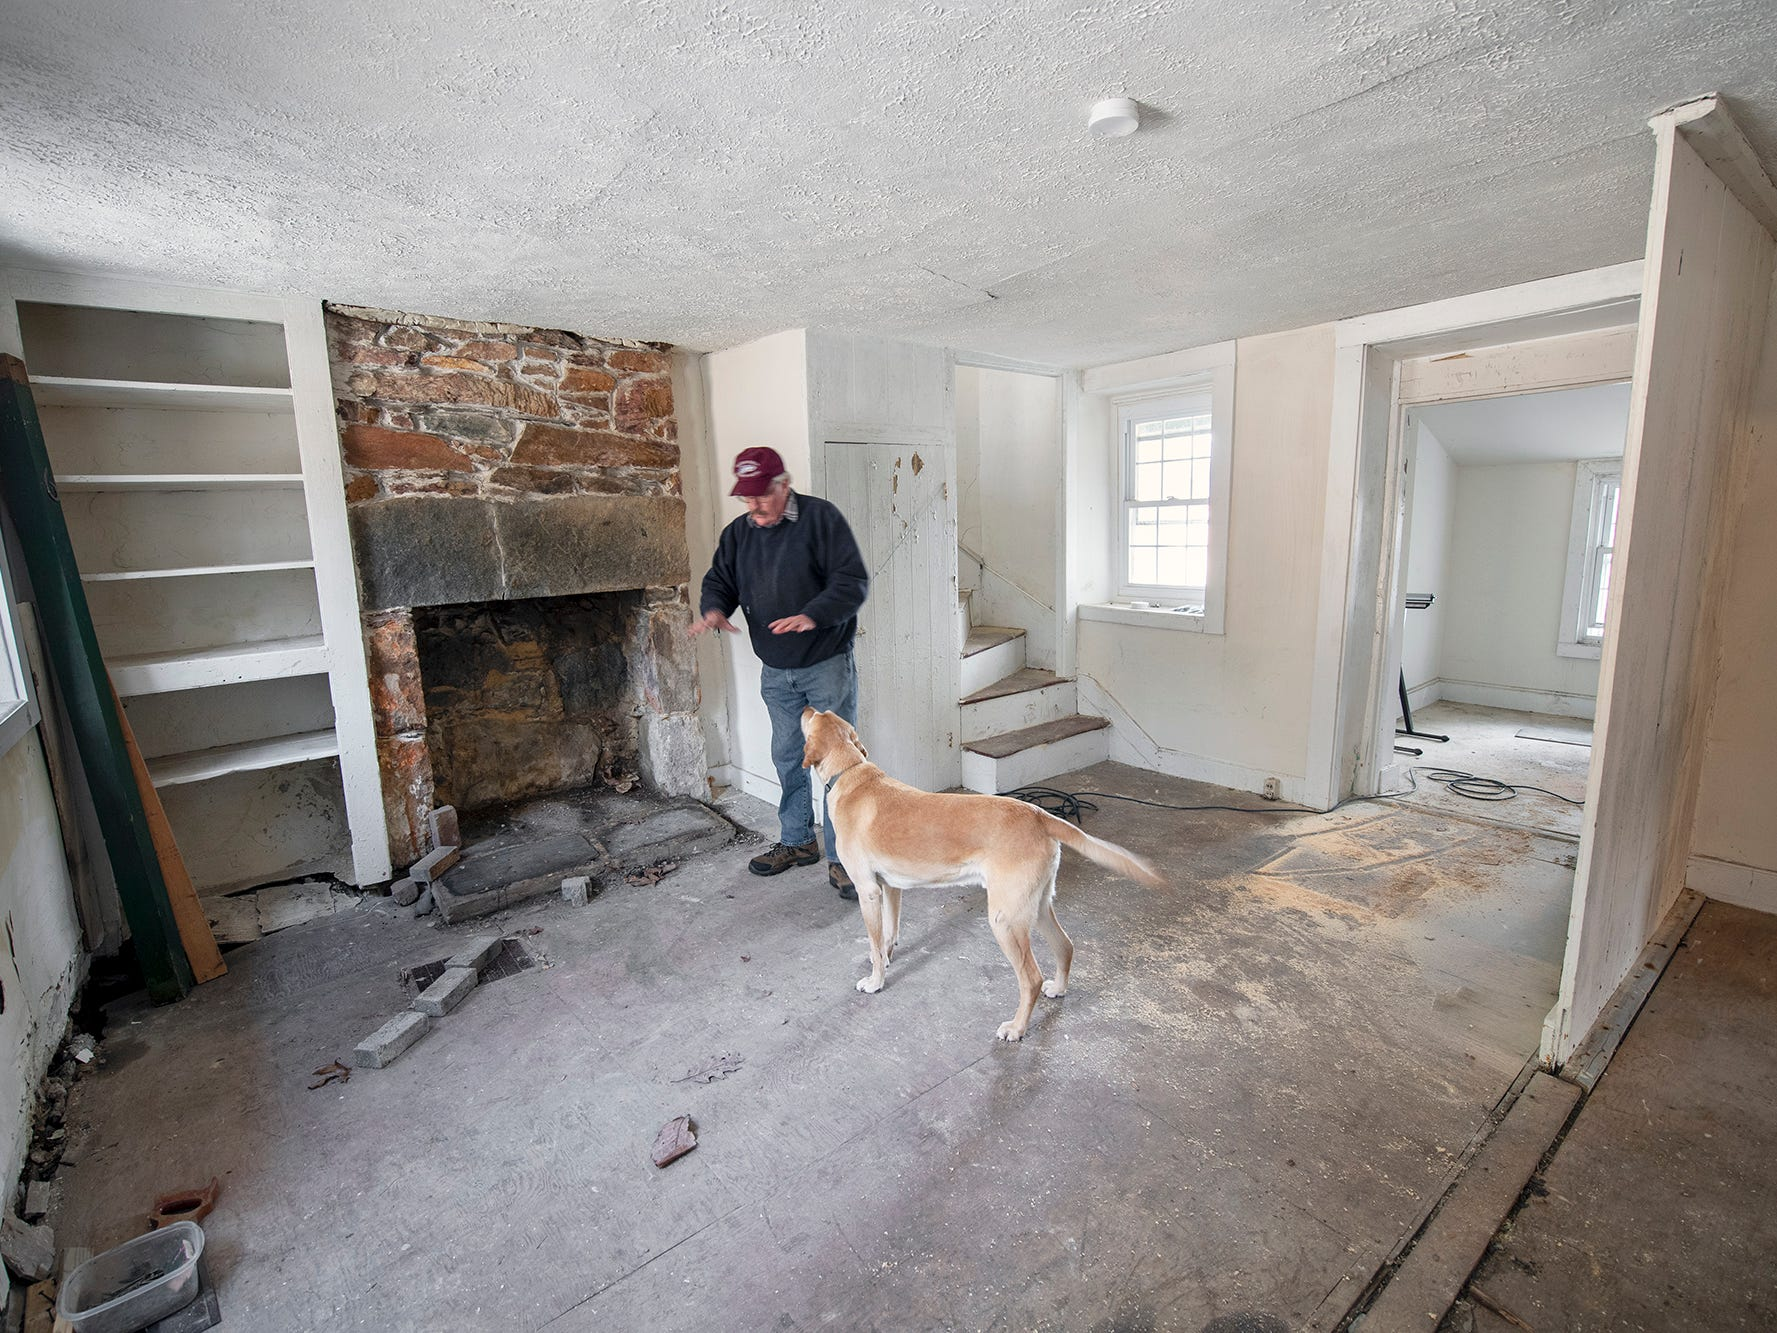 Don Robinson and his dog Jake stand next to the fireplace of the  recent Welsh quarrymen's cottage acquisition. He would like to return the original woodwork to the hearth.